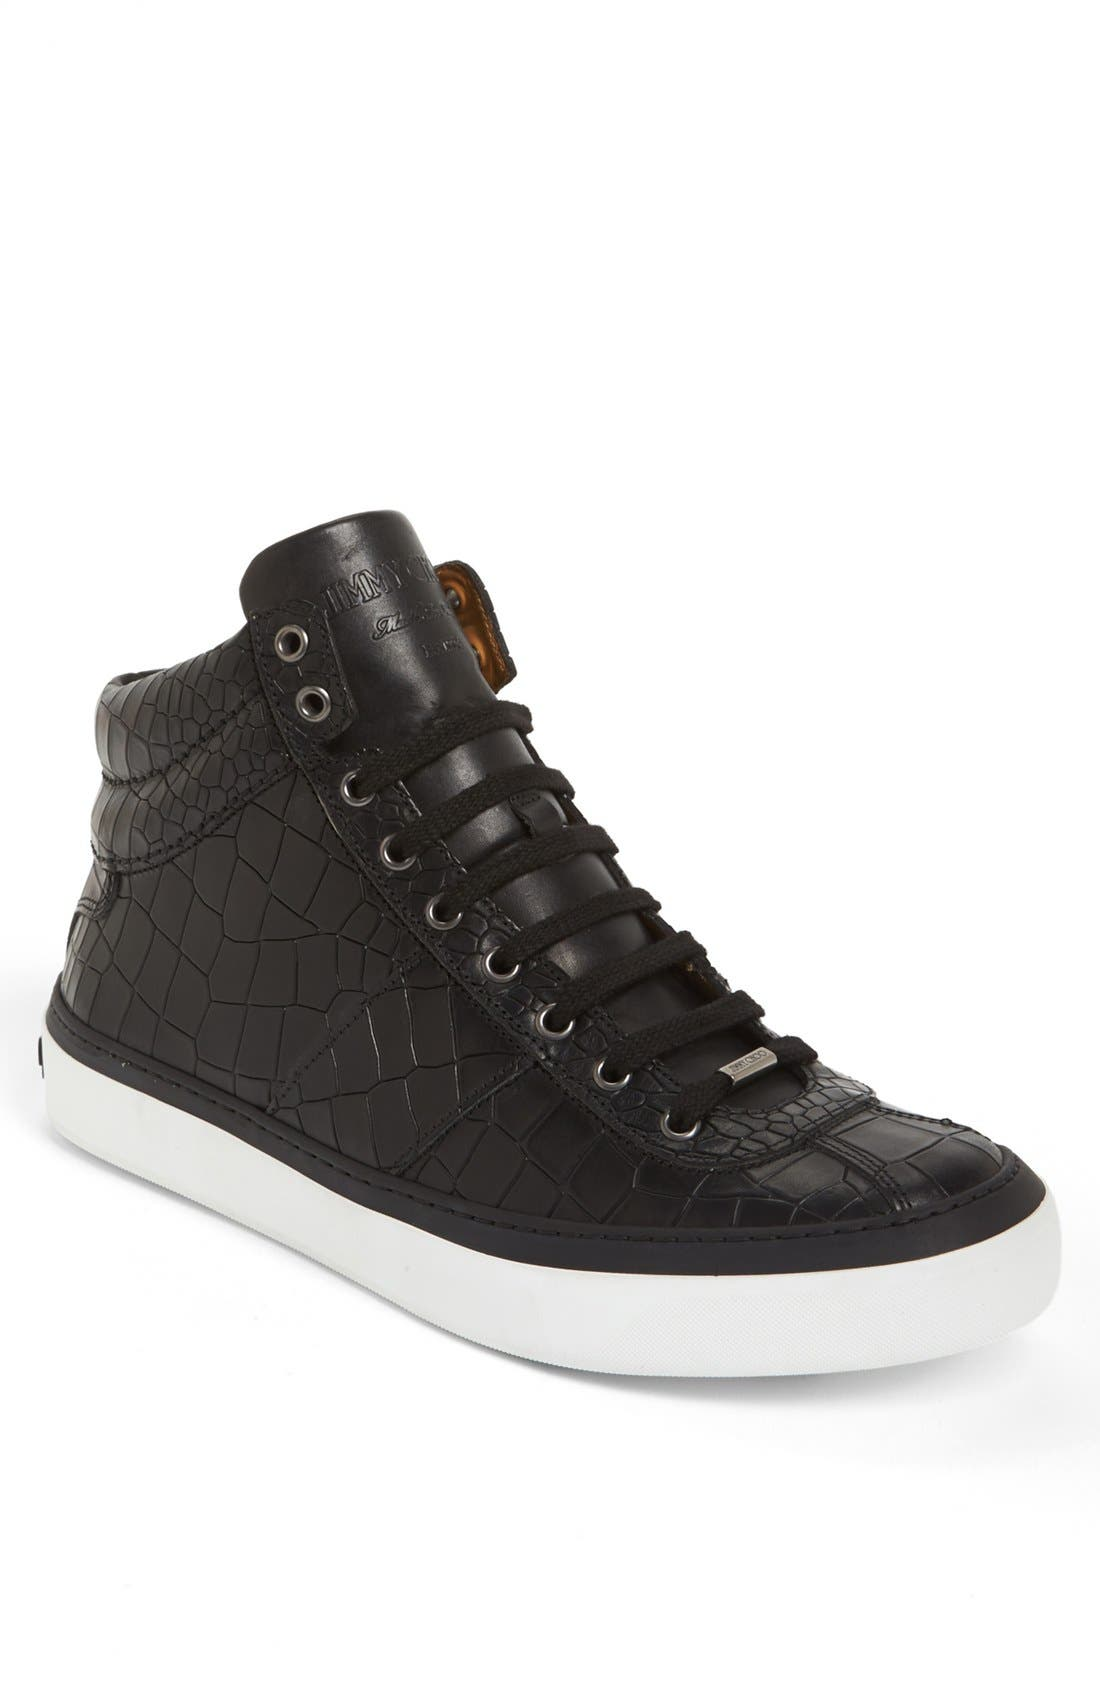 Belgravia High Top Sneaker,                         Main,                         color,